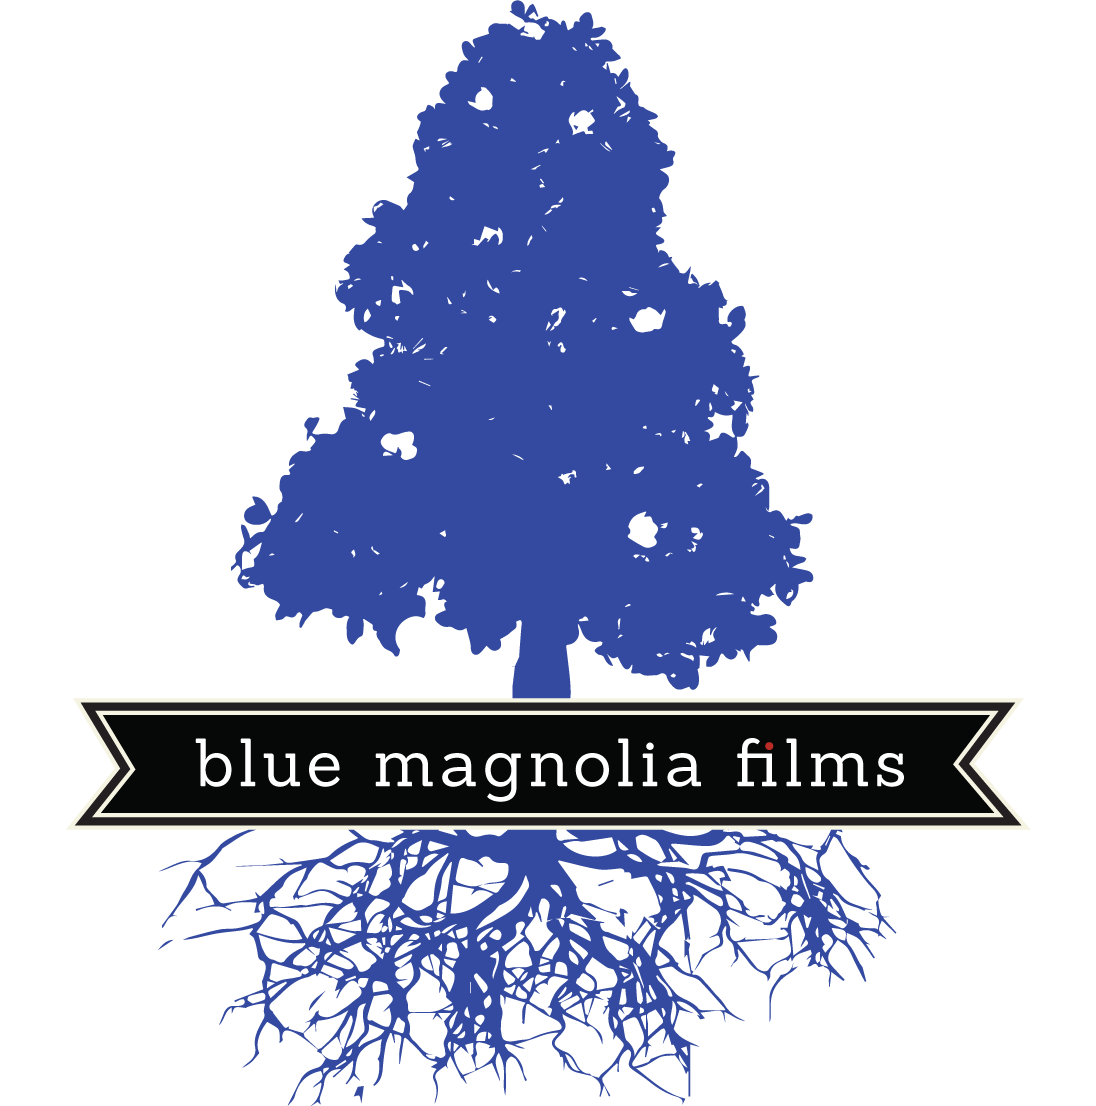 Blue Magnolia Films